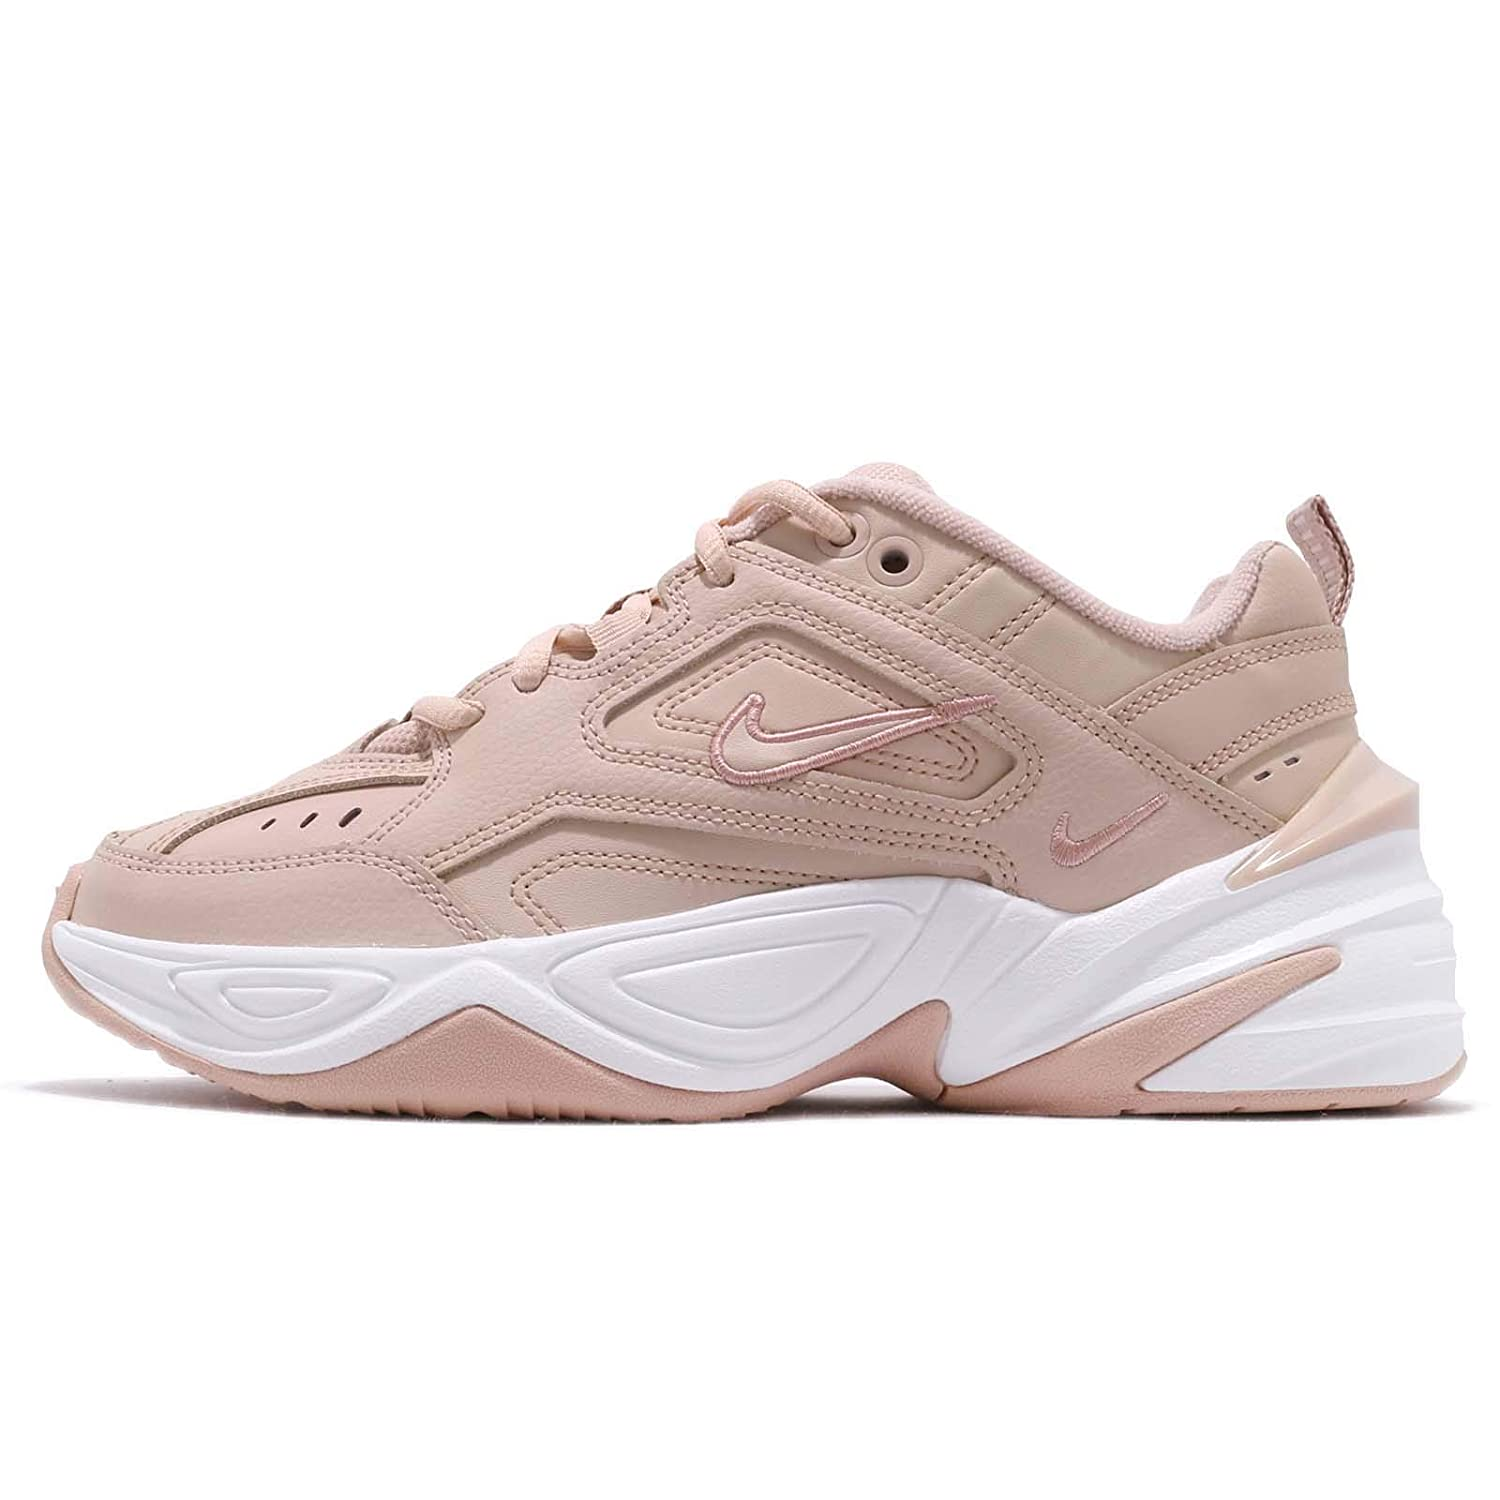 M2k Tekno Leather Sneakers at Amazon